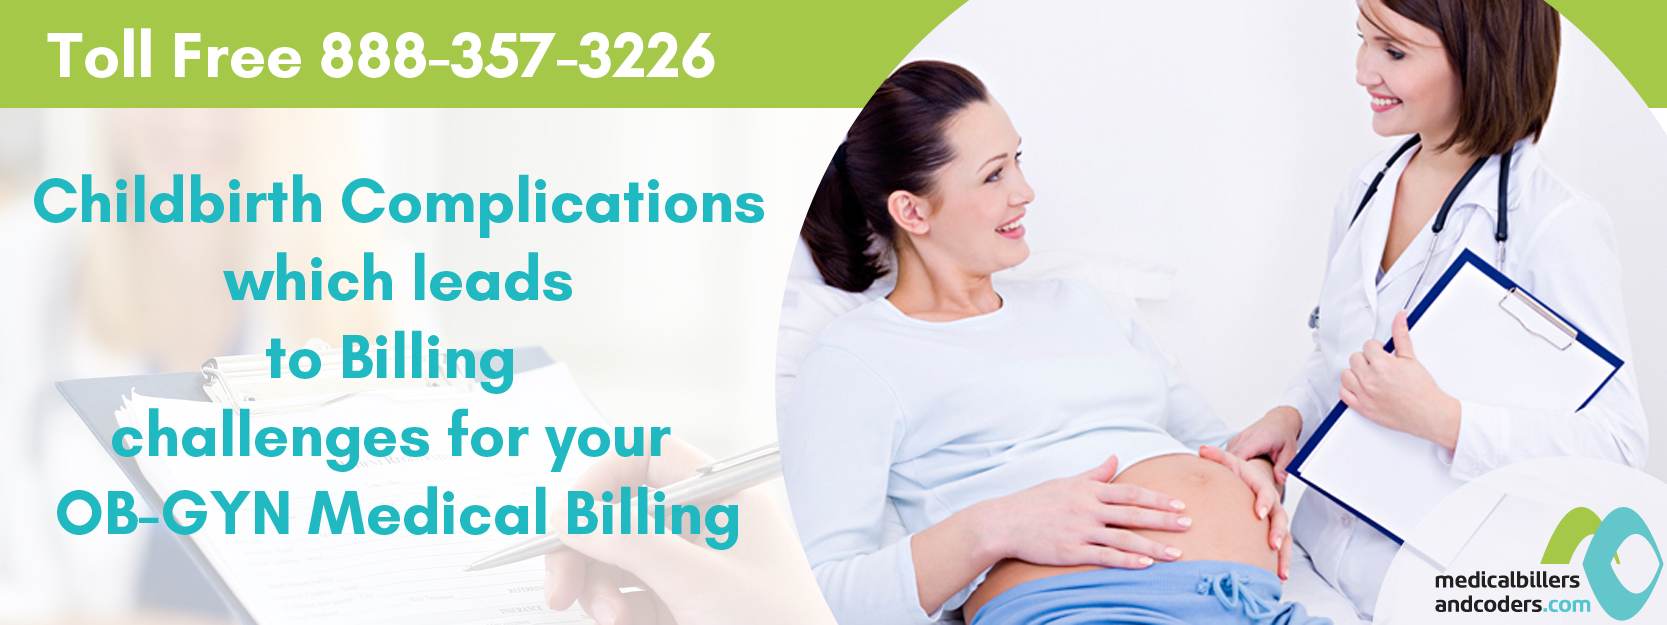 Childbirth Complications Which Leads To Billing Challenges For Your OB-GYN Medical Billing